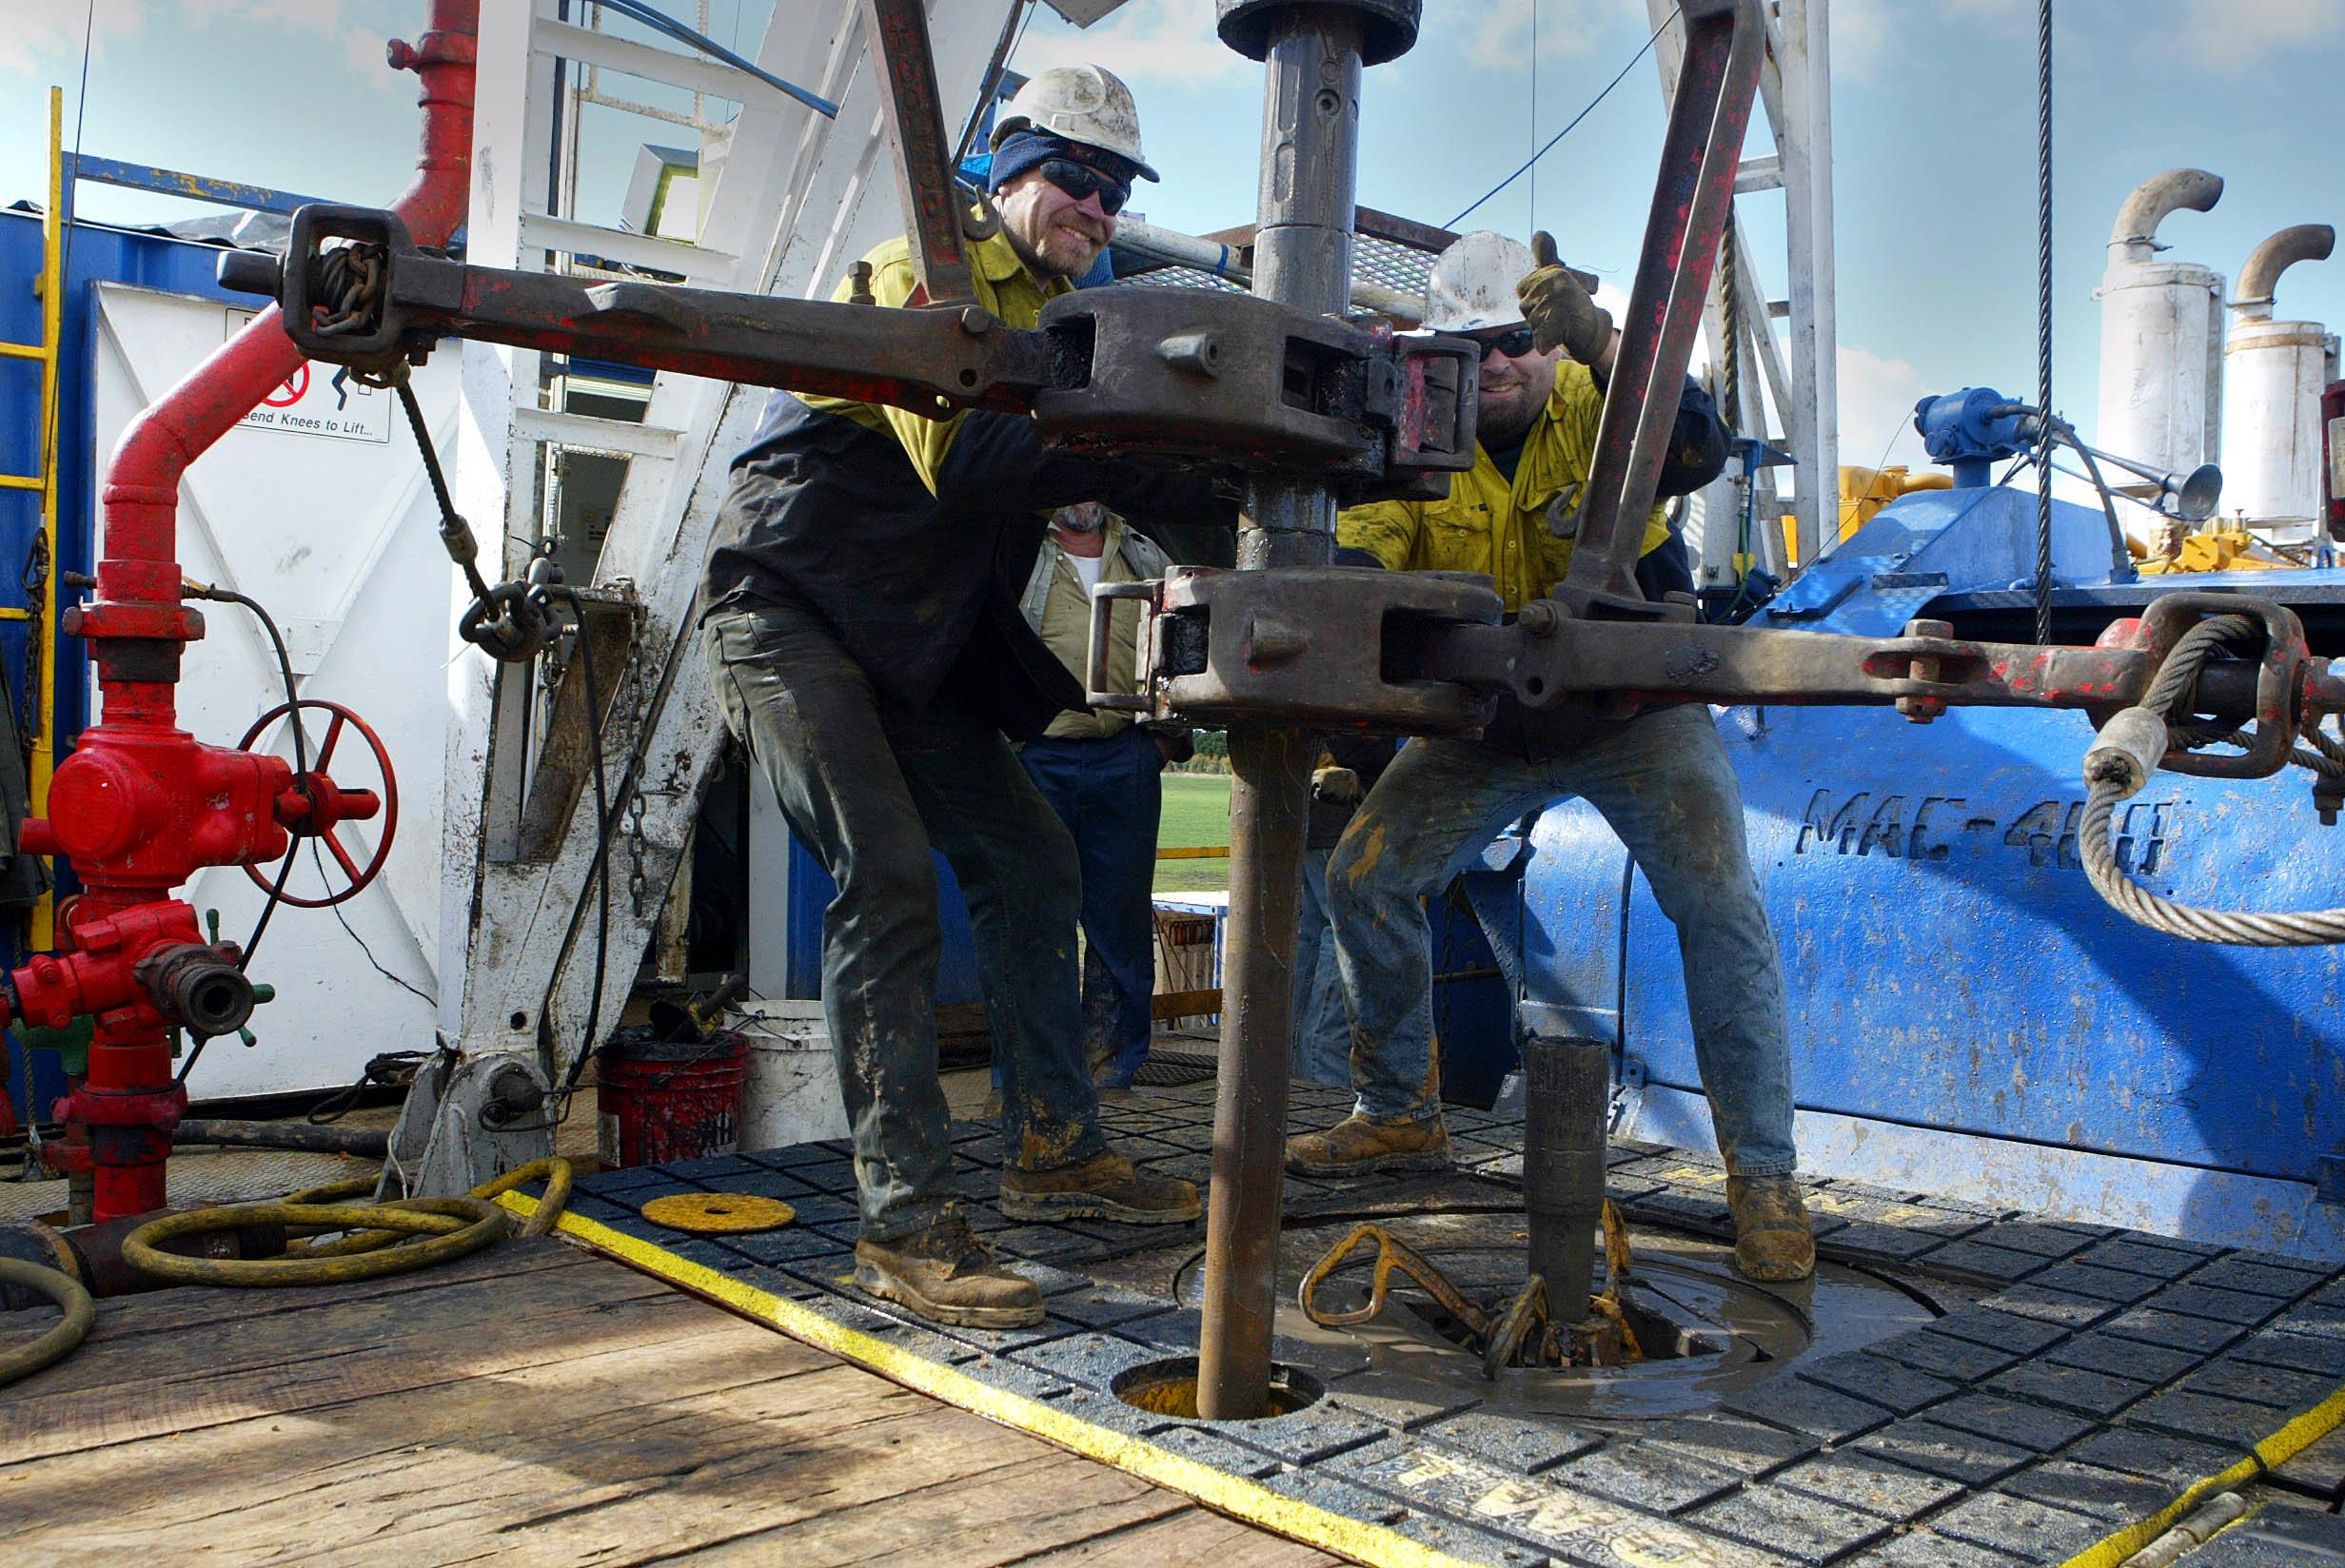 Workers change out a pipe on The Bellarine 1 drilling rig west of Geelong. The